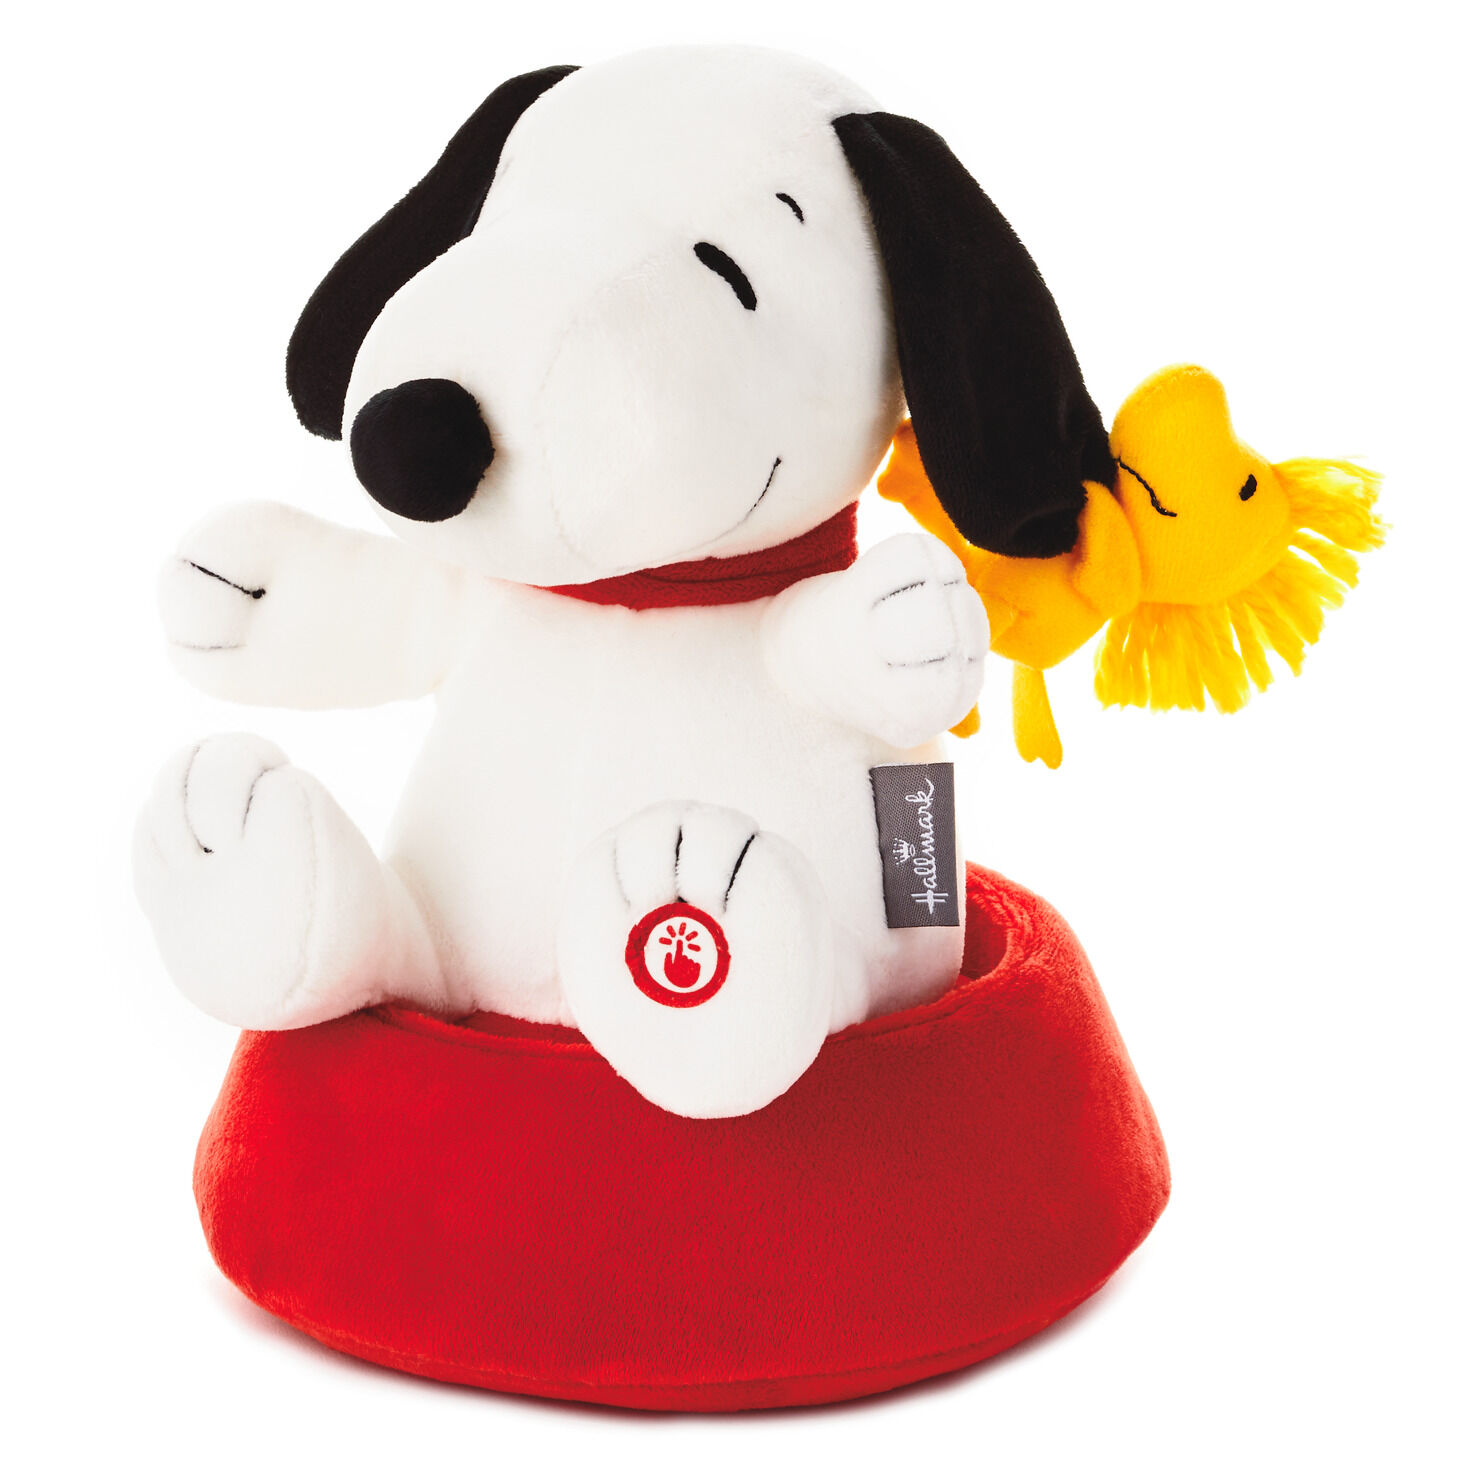 Snoopy Thanksgiving Stuffed Animal Imfuture14